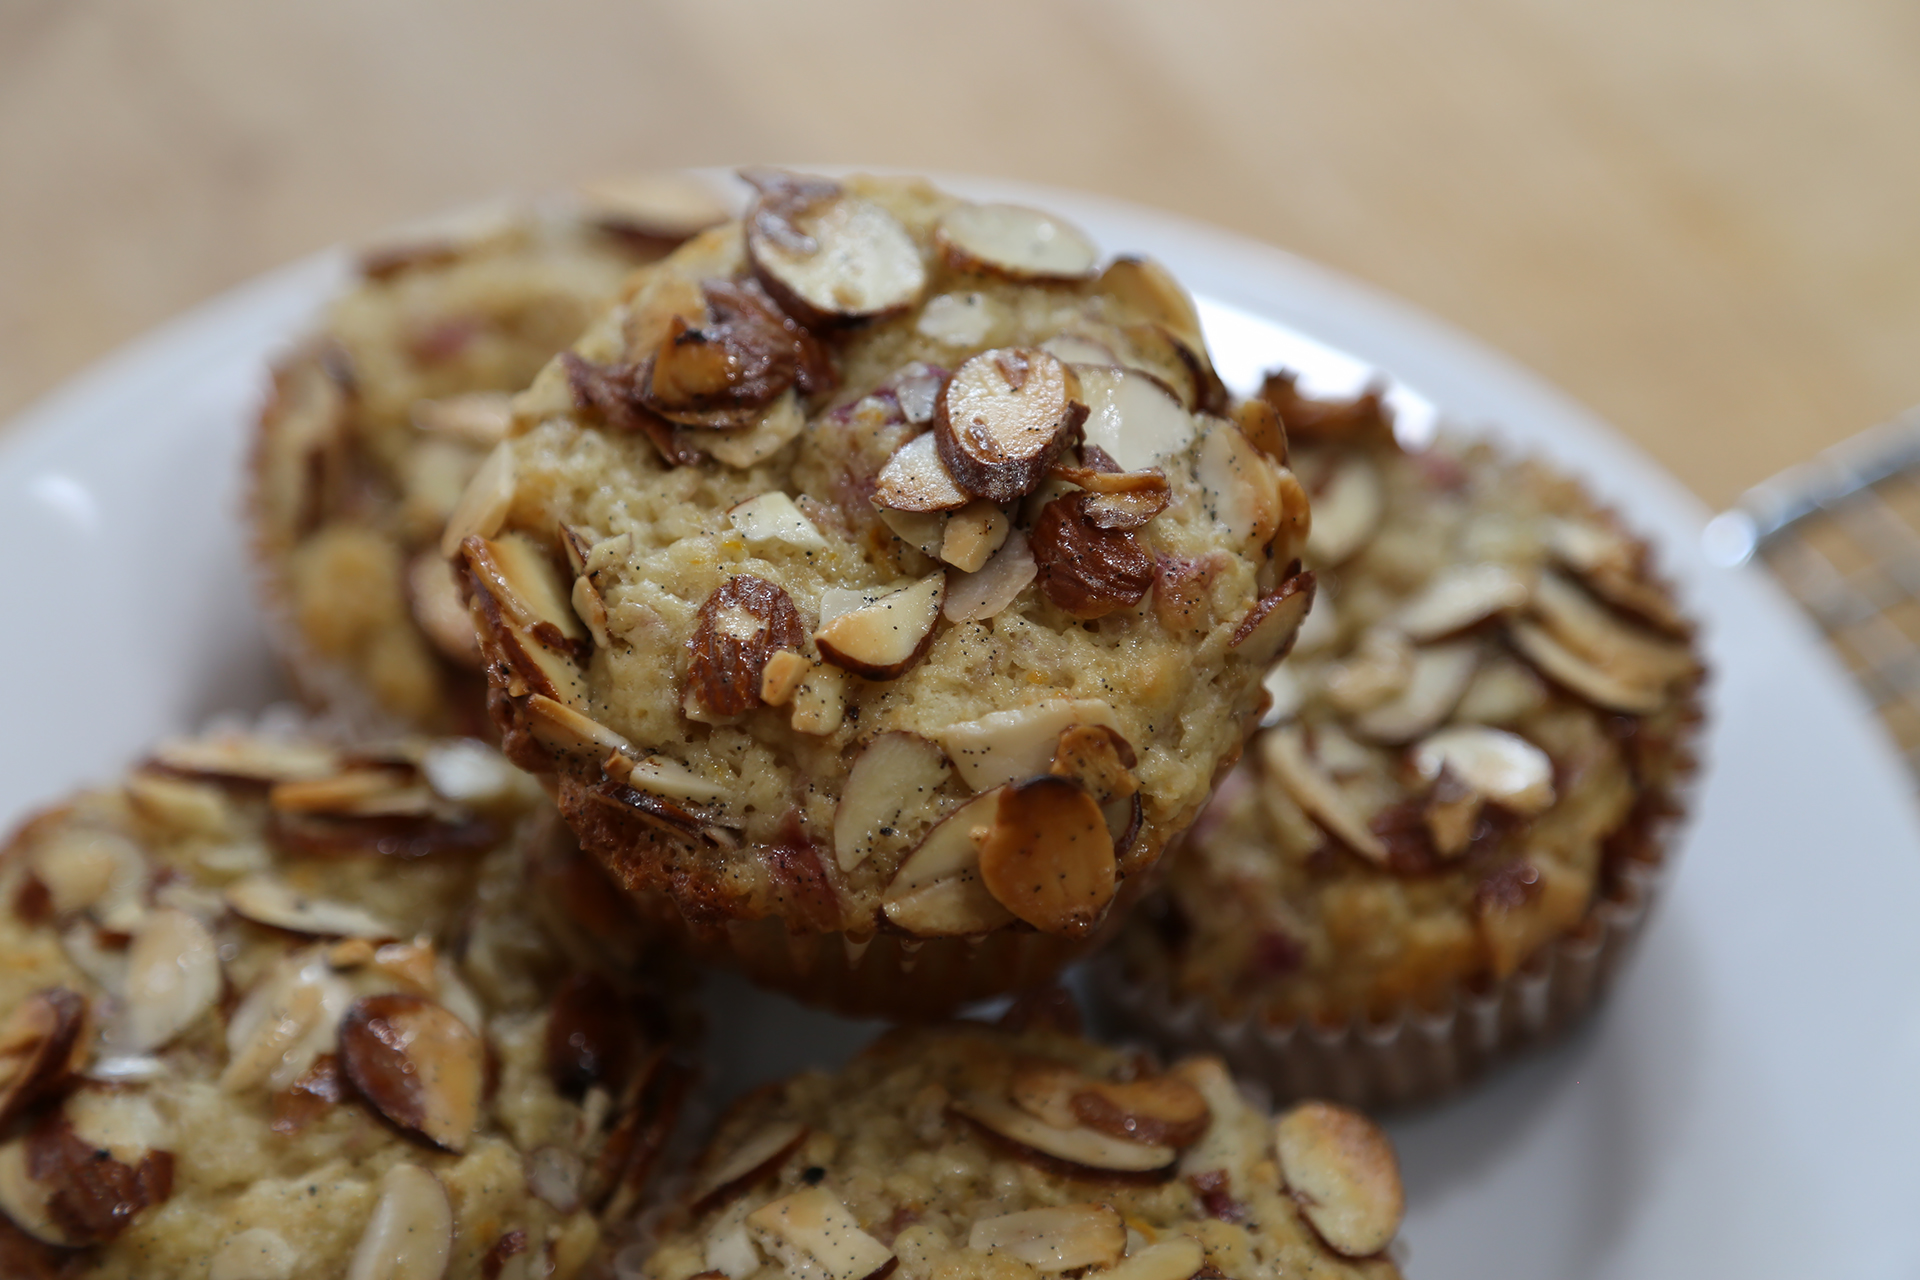 The muffins are best served the day they are baked, but can be stored at room temperature for up to 3 days and briefly re-heated in a 400F oven. Or, freeze the muffins in a zippered plastic freezer bag for up to 3 months; let defrost at room temperature, then re-heat in a 400F oven.